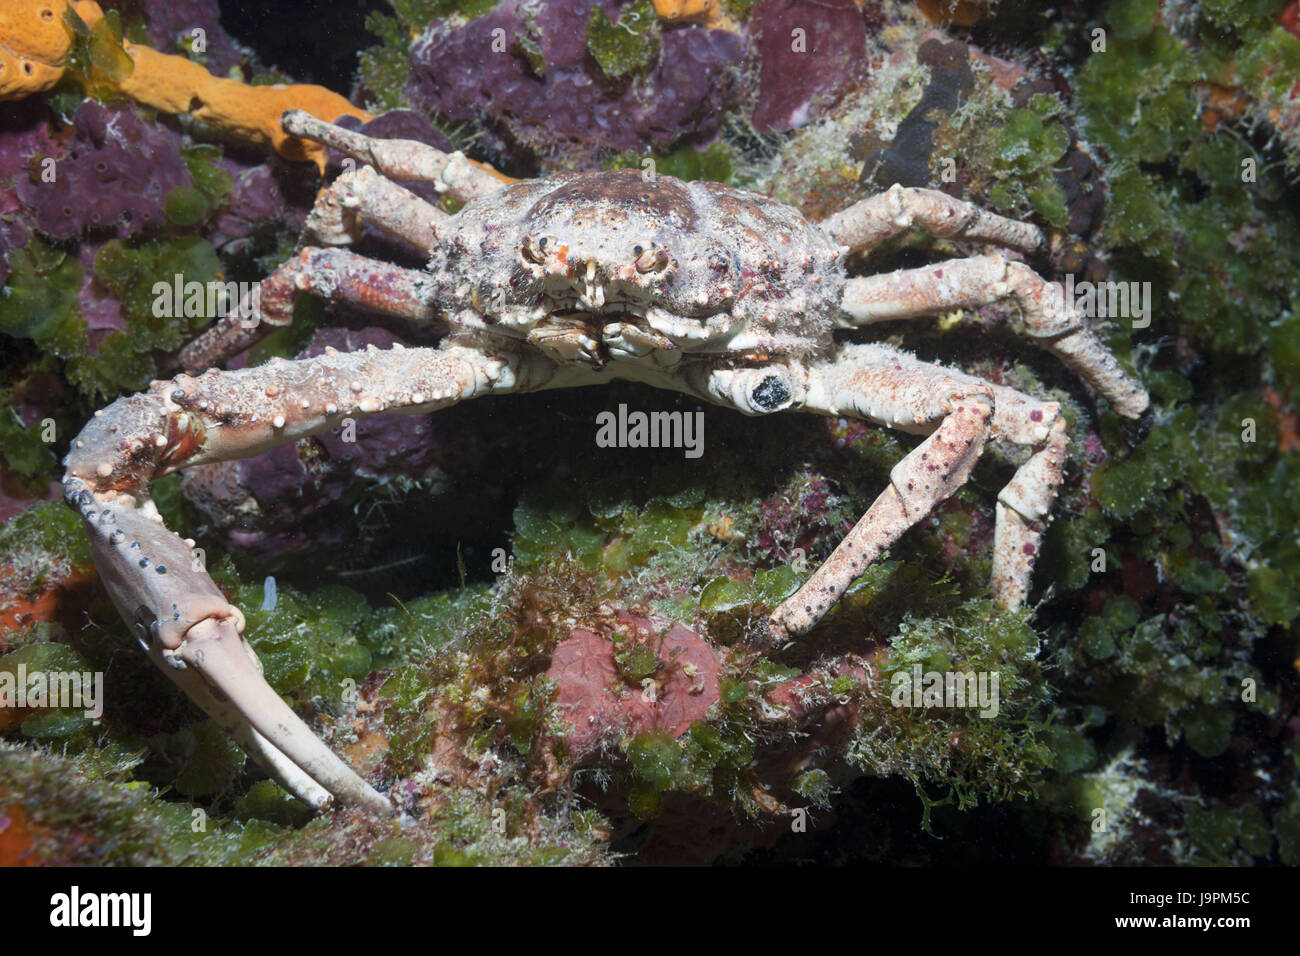 Spiny spinning crab,Mithrax spinosissimus,Cozumel,the Caribbean,Mexico, Stock Photo